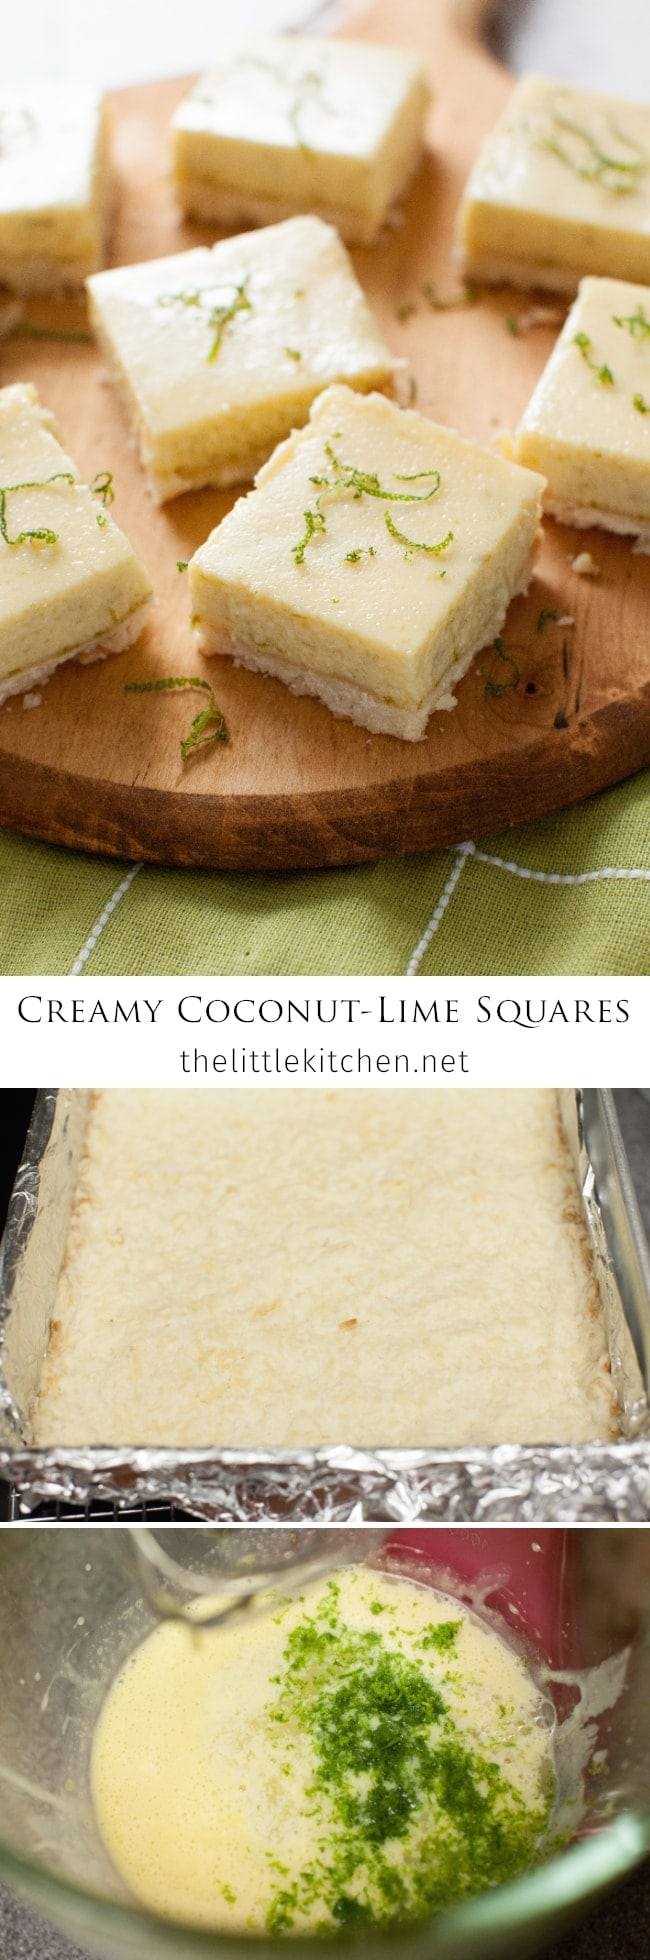 Creamy Coconut Lime Squares from thelittlekitchen.net